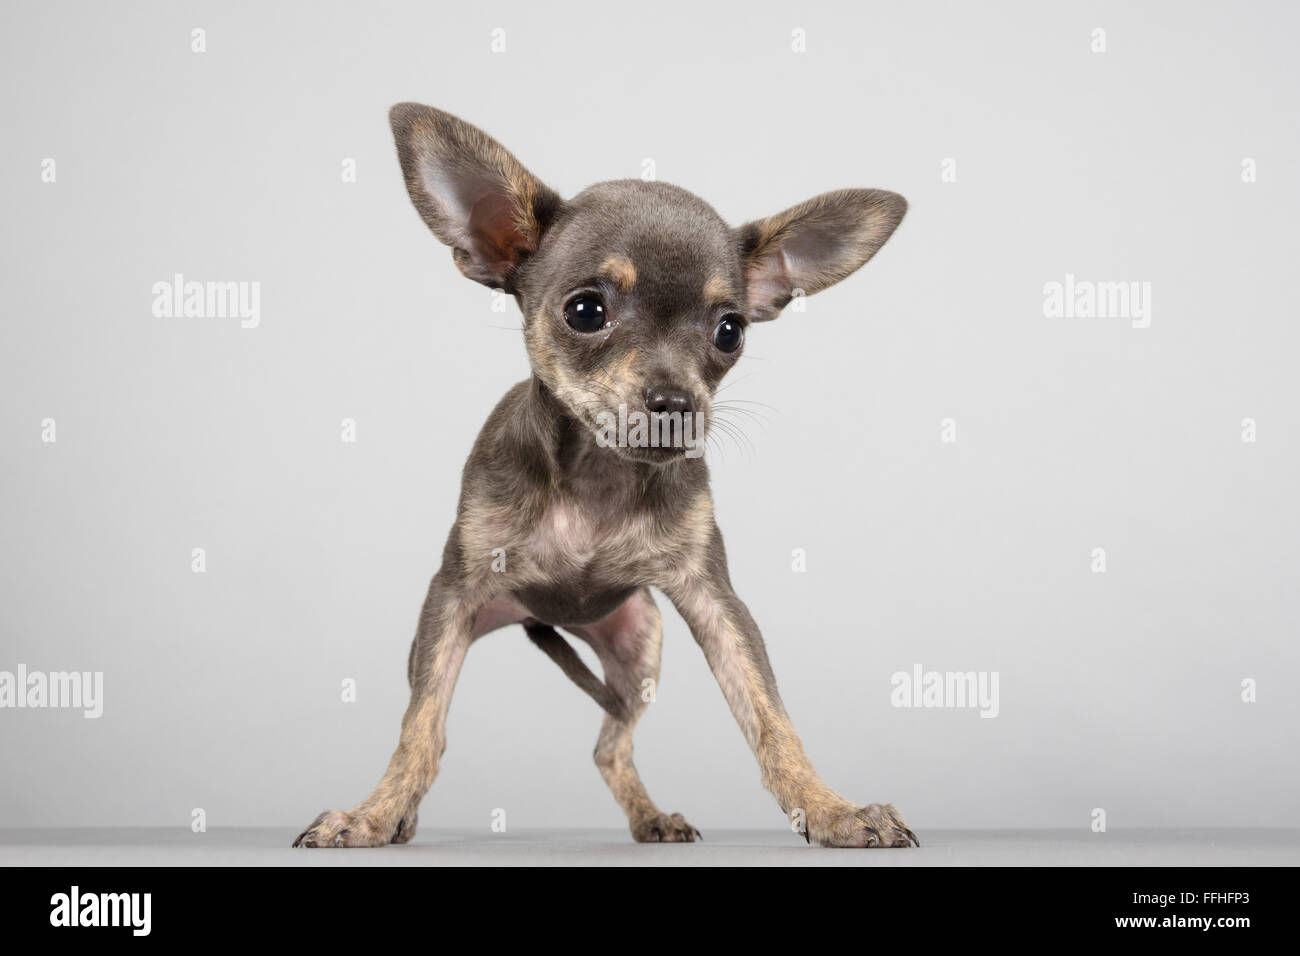 Chihuahua Puppy 13 Weeks On Grey Background Stock Photo Alamy